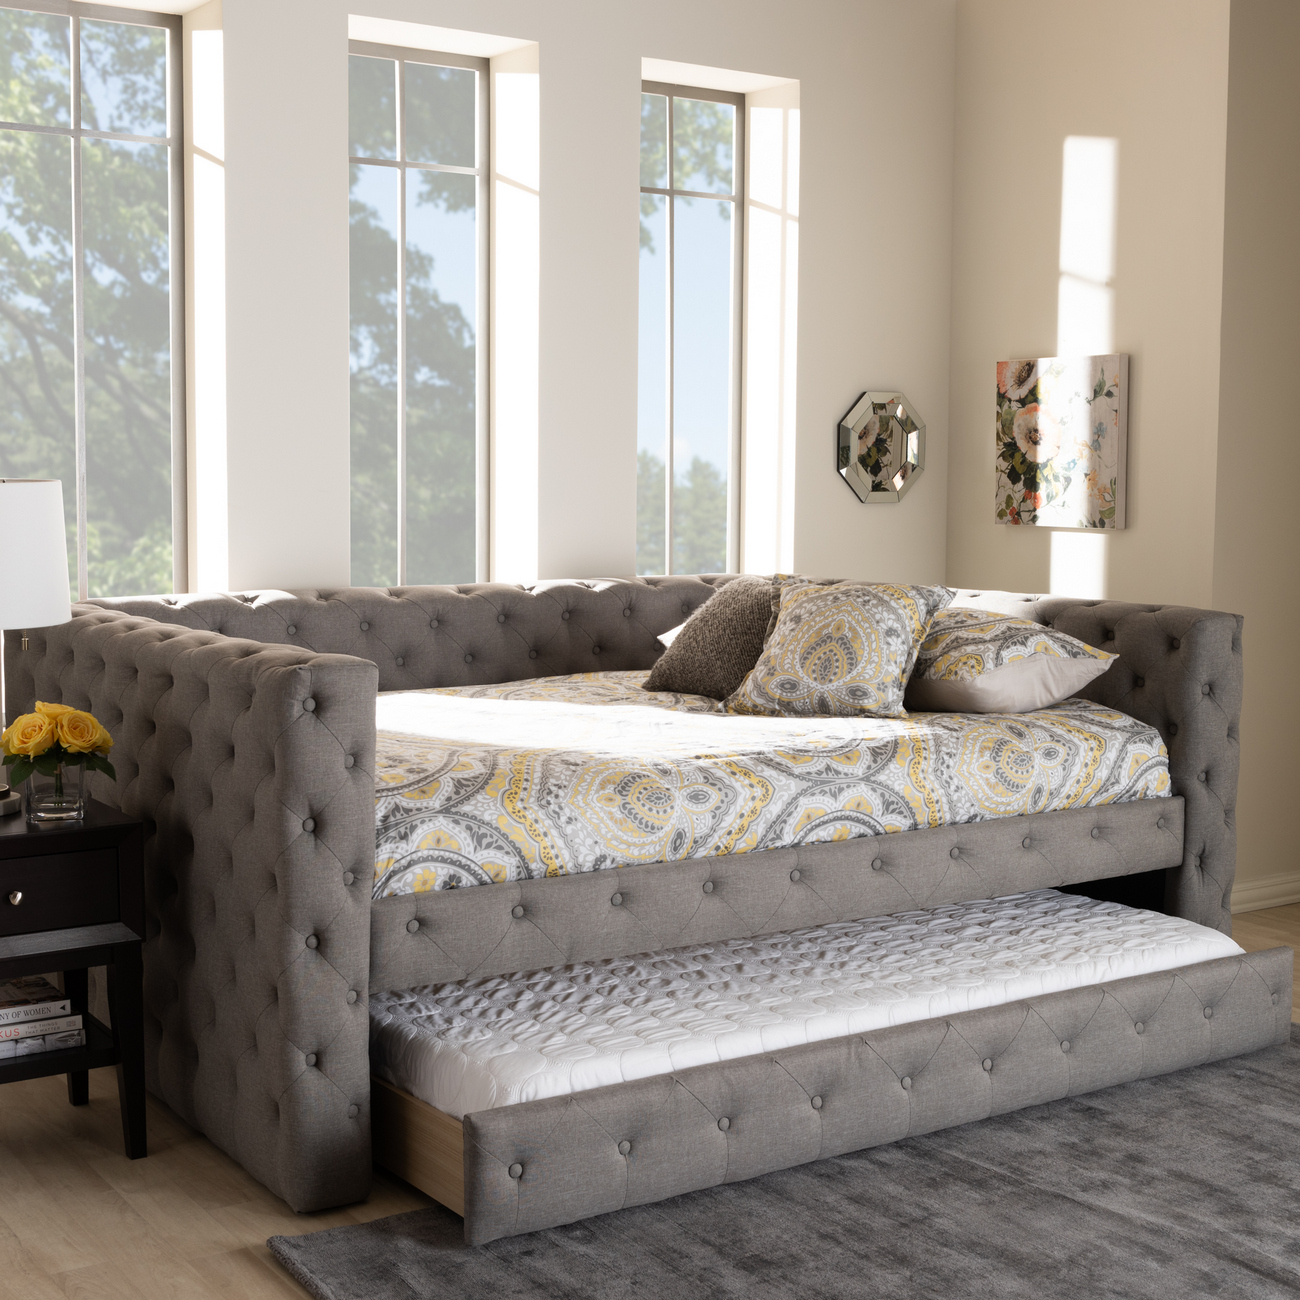 Fabric Upholstered Daybed Trundle